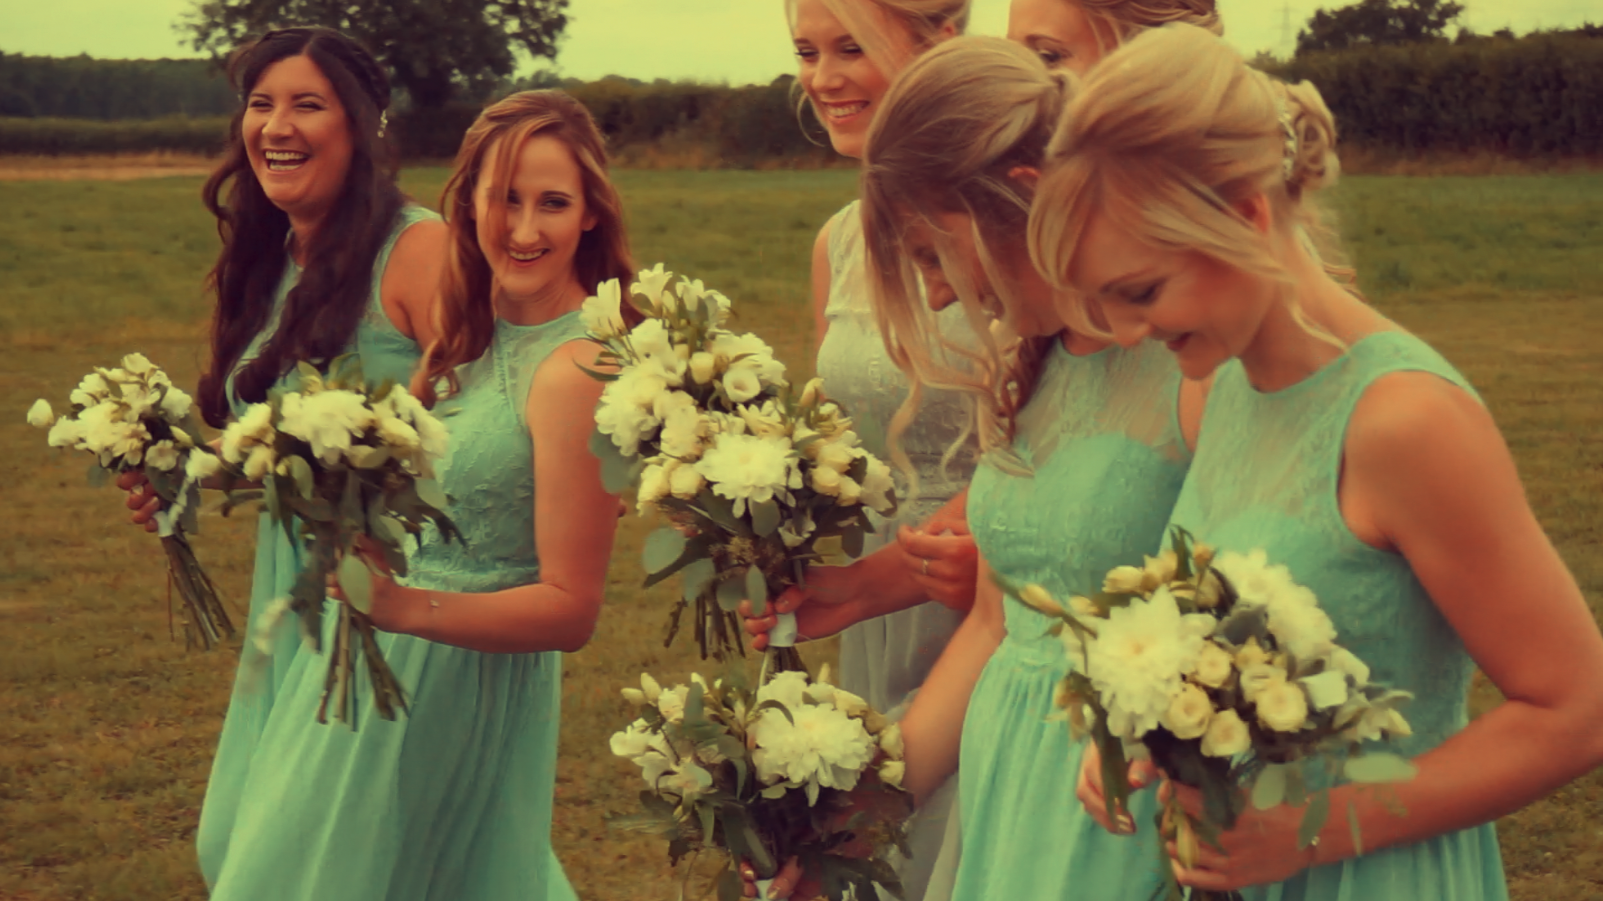 Image: Bride Tribe at Pentney Abbey in Norfolk!